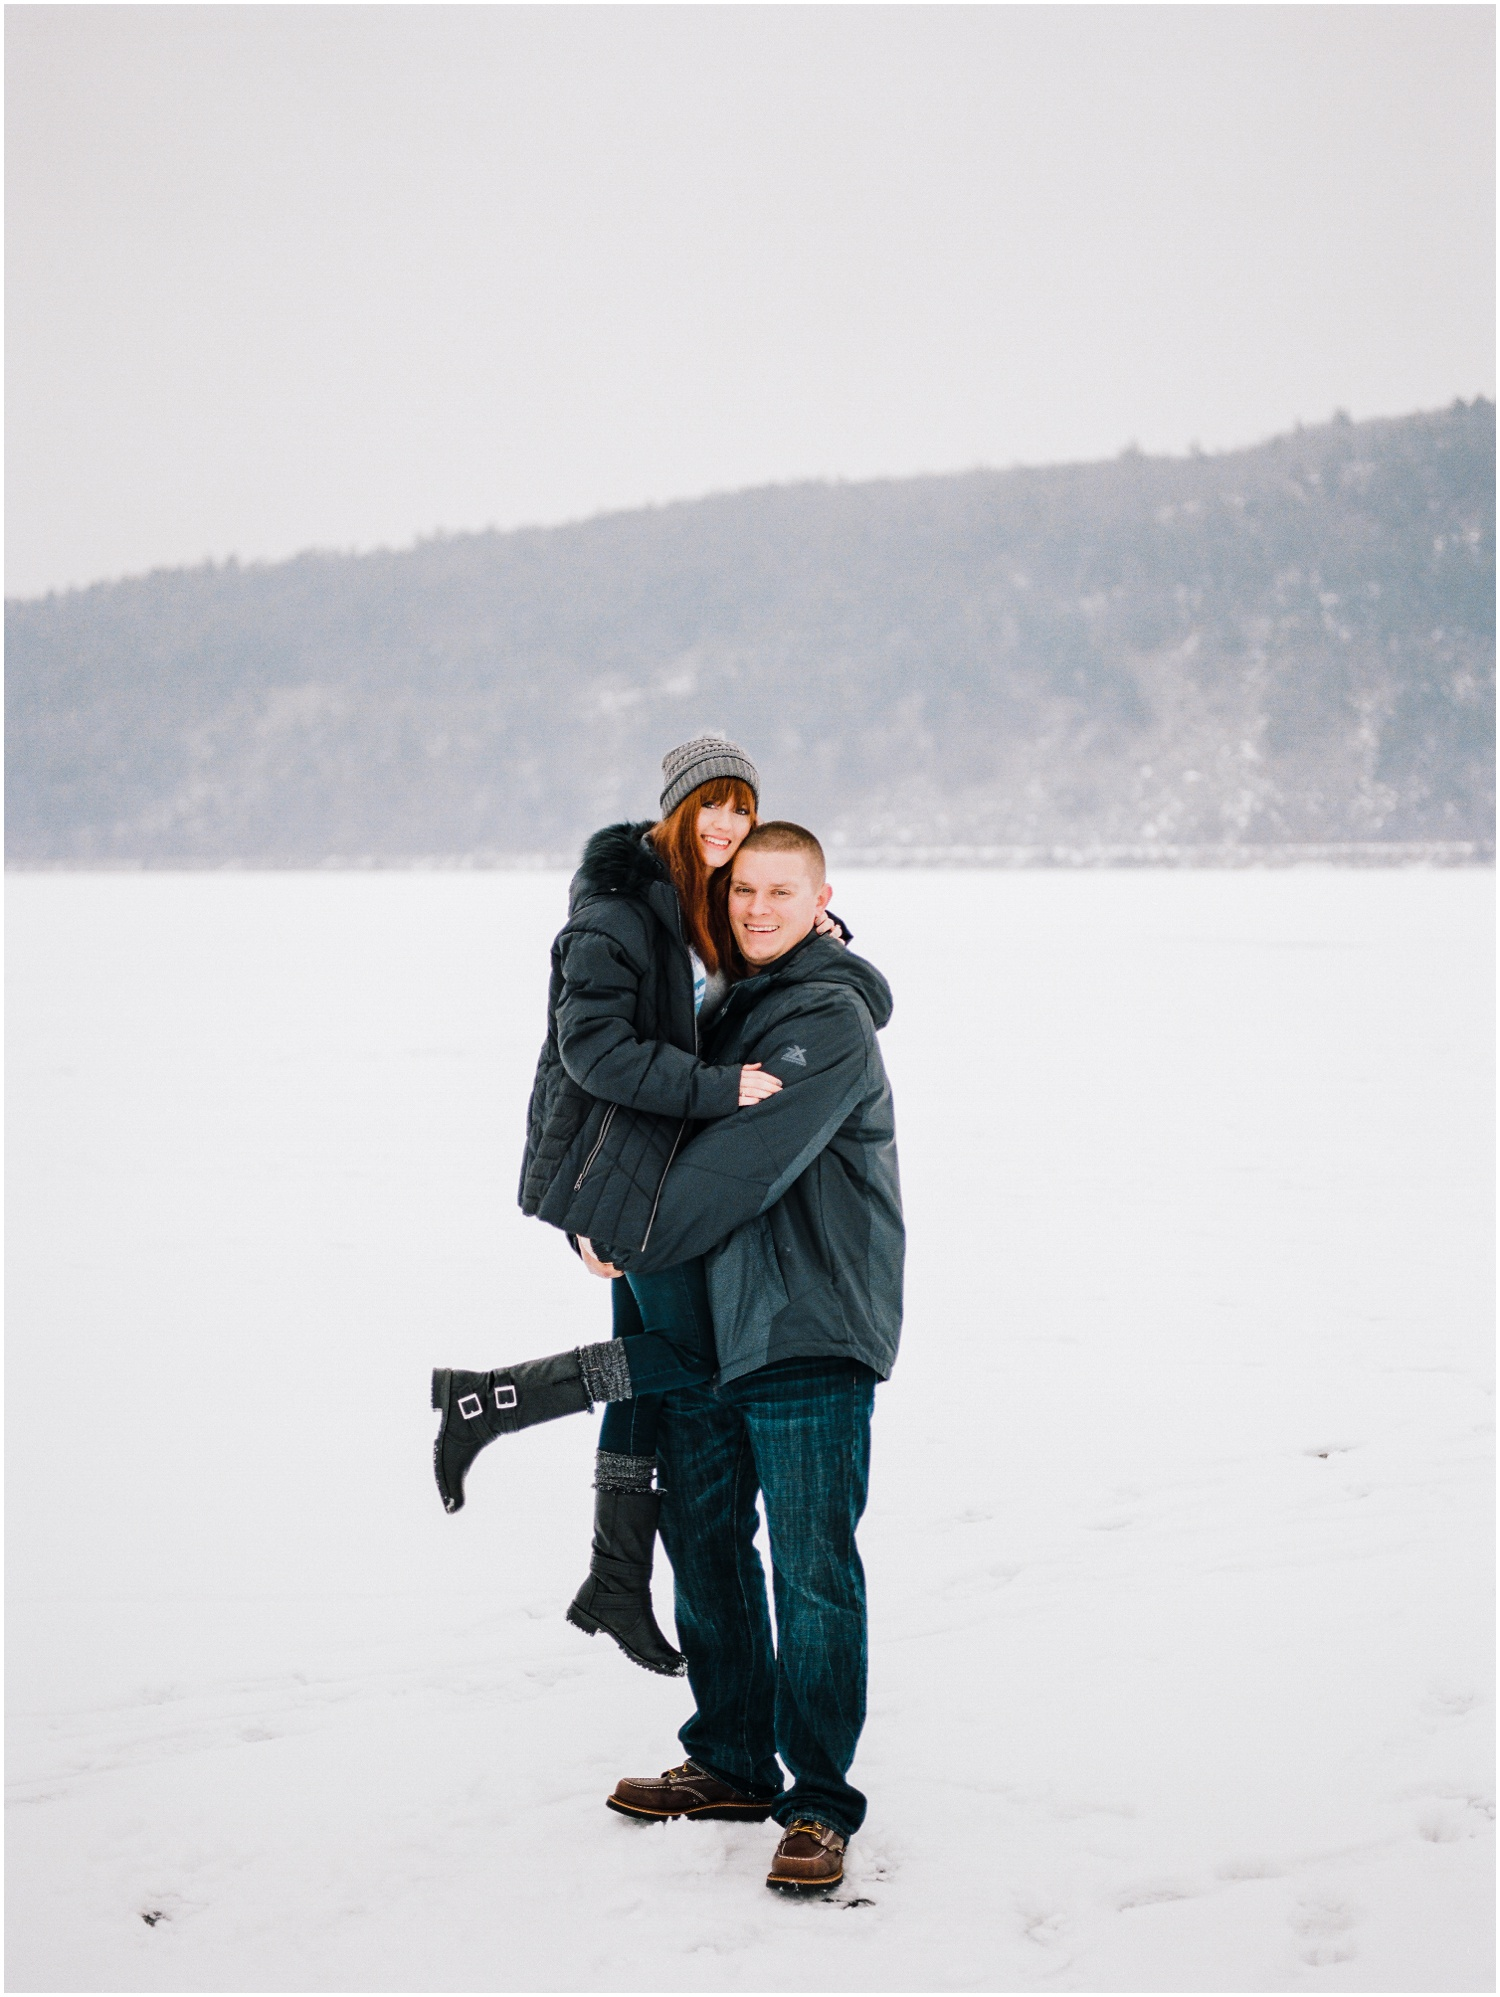 Devils-Lake-Baraboo-Wisconsin-Engagement-Photographer-Lindsey-And-Cody-Engaged-183.jpg